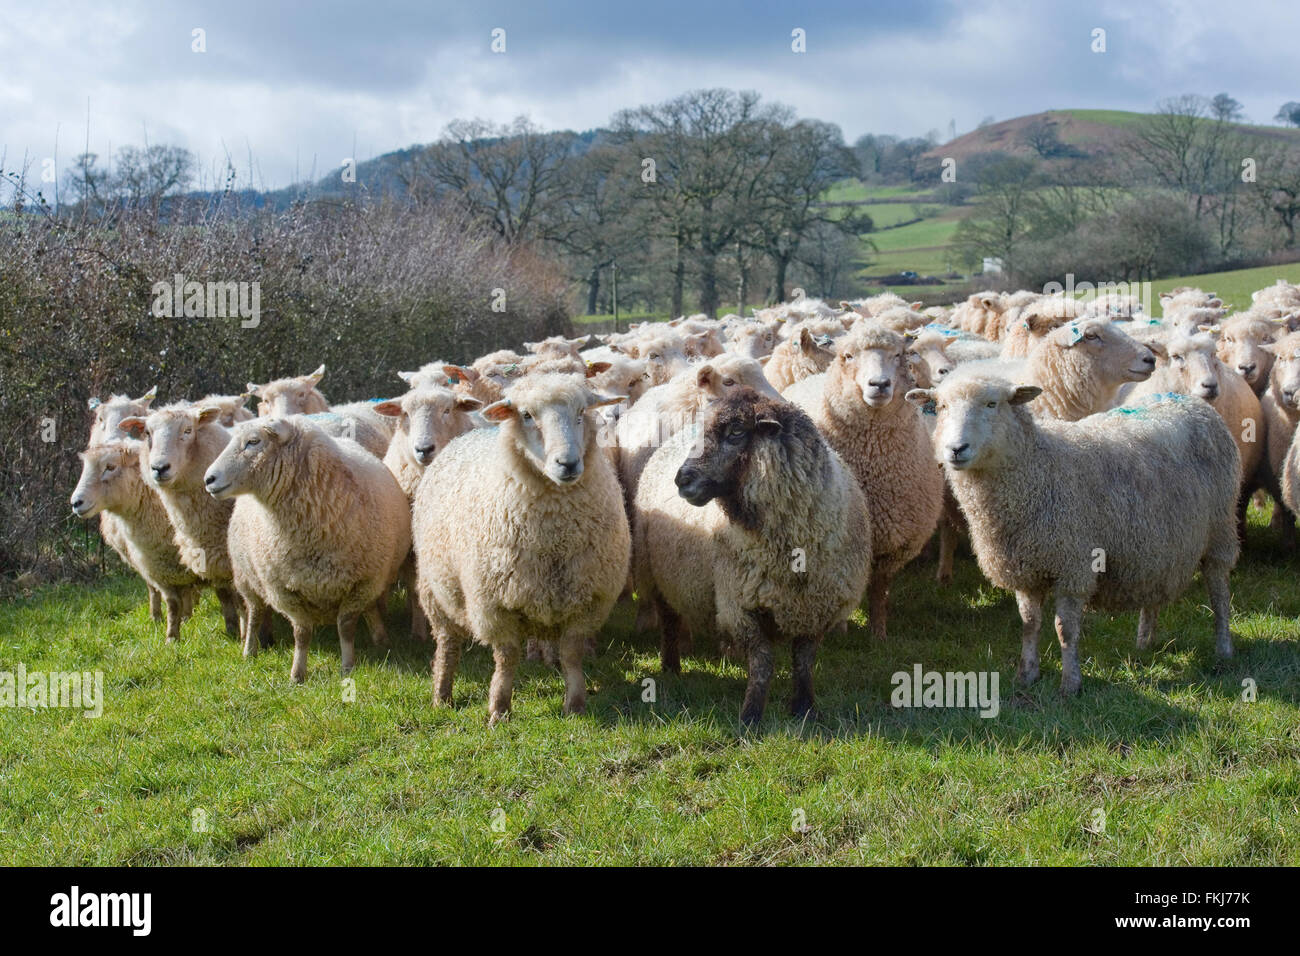 flock of sheep close up - Stock Image